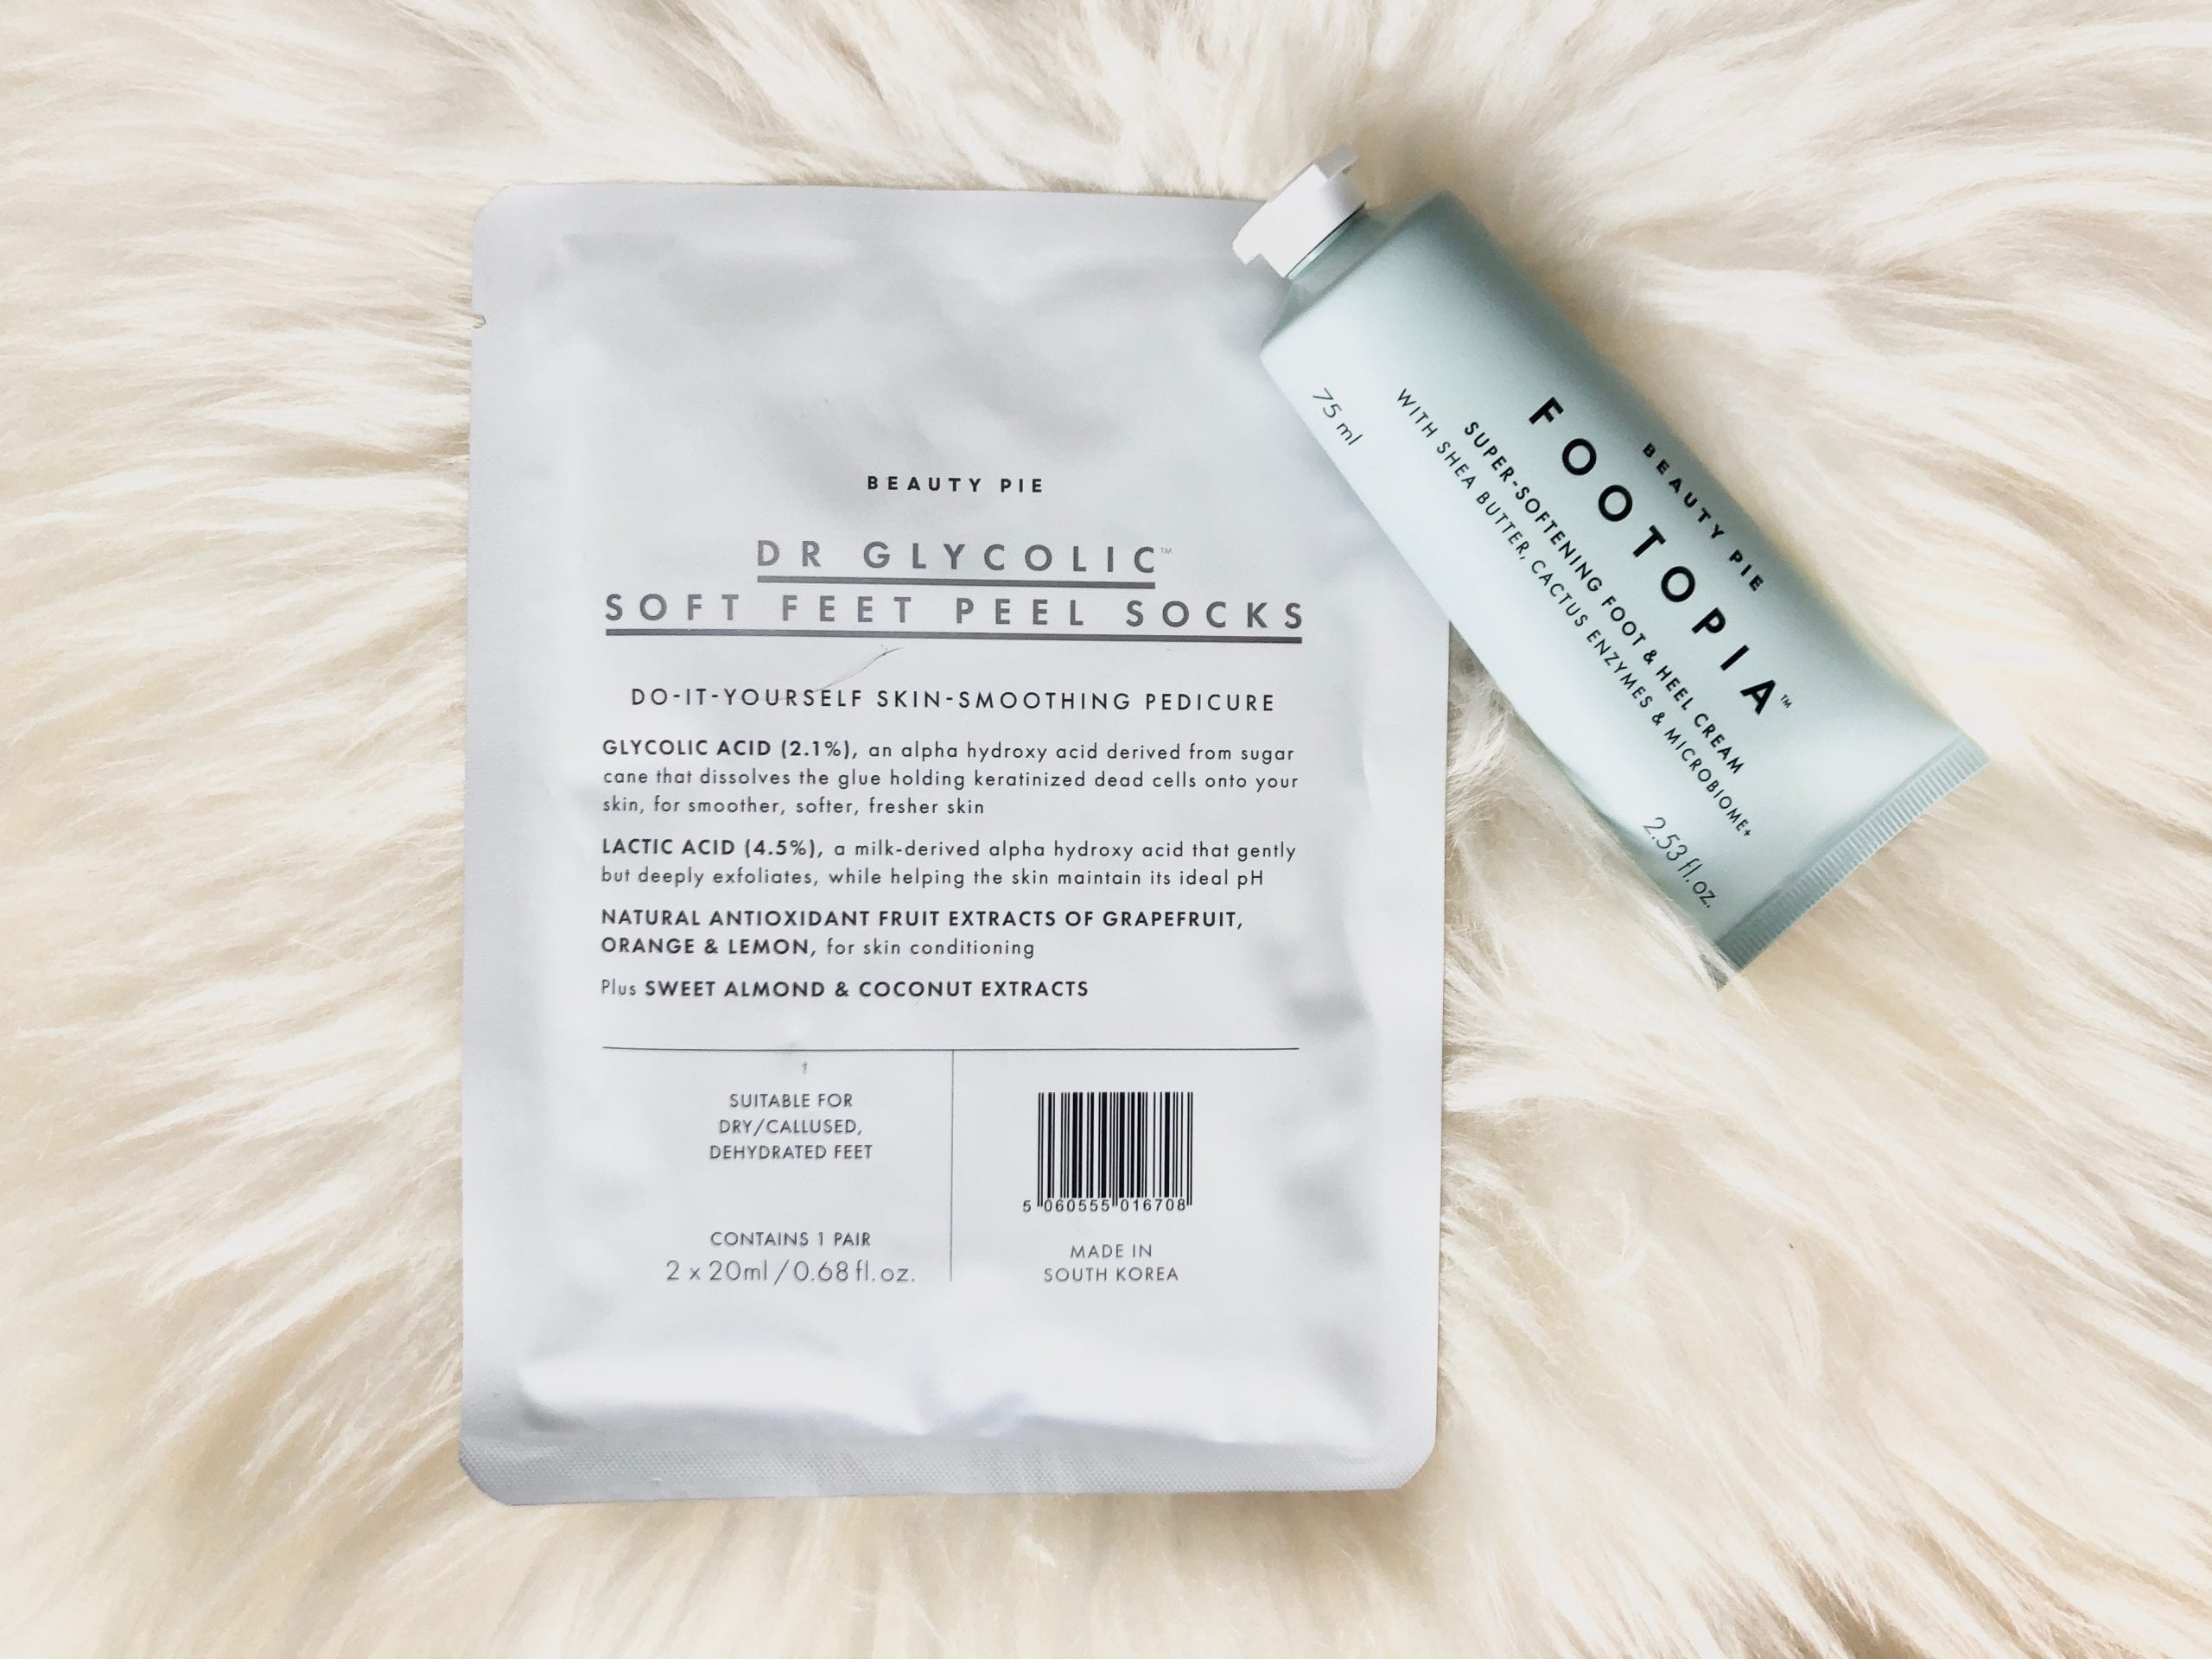 Beauty Pie Dr Glycolic Soft Feet Peel Socks and Footopia Foot and Heel Cream Review | Bicester Makeup Artist